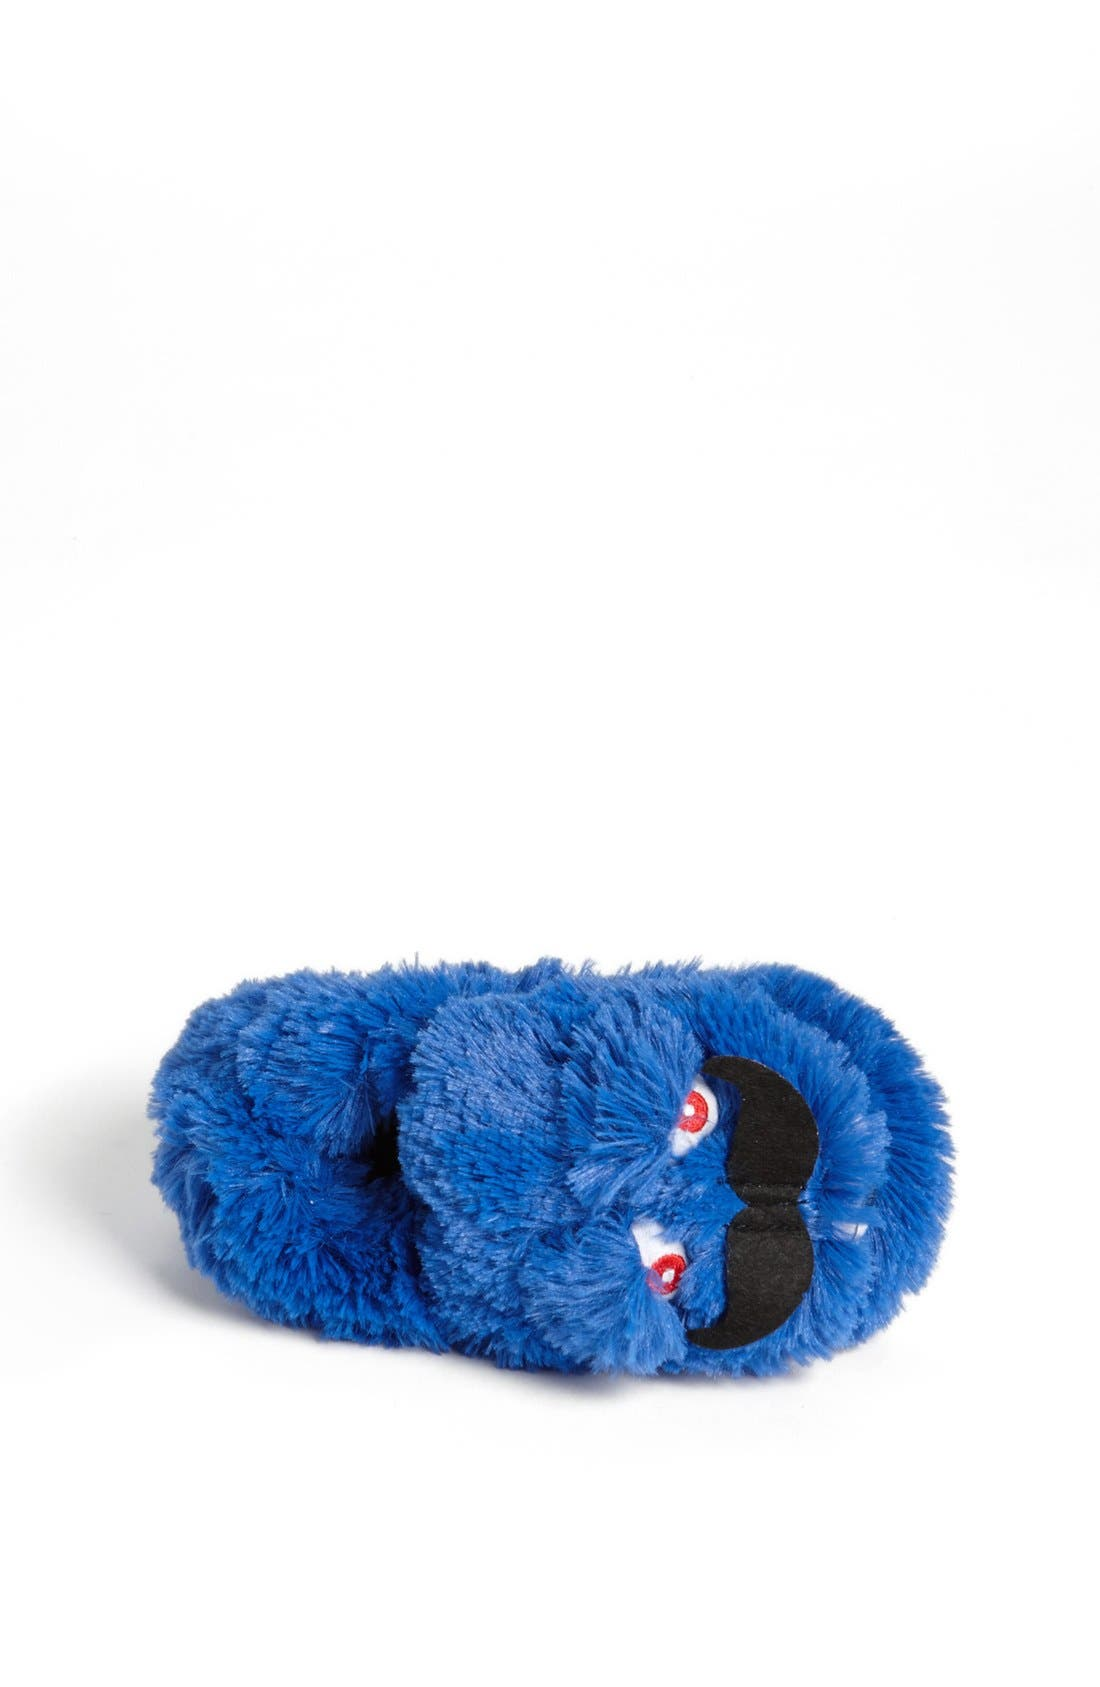 Alternate Image 3  - Stride Rite 'Mustachio' Slippers (Toddler & Little Kid)